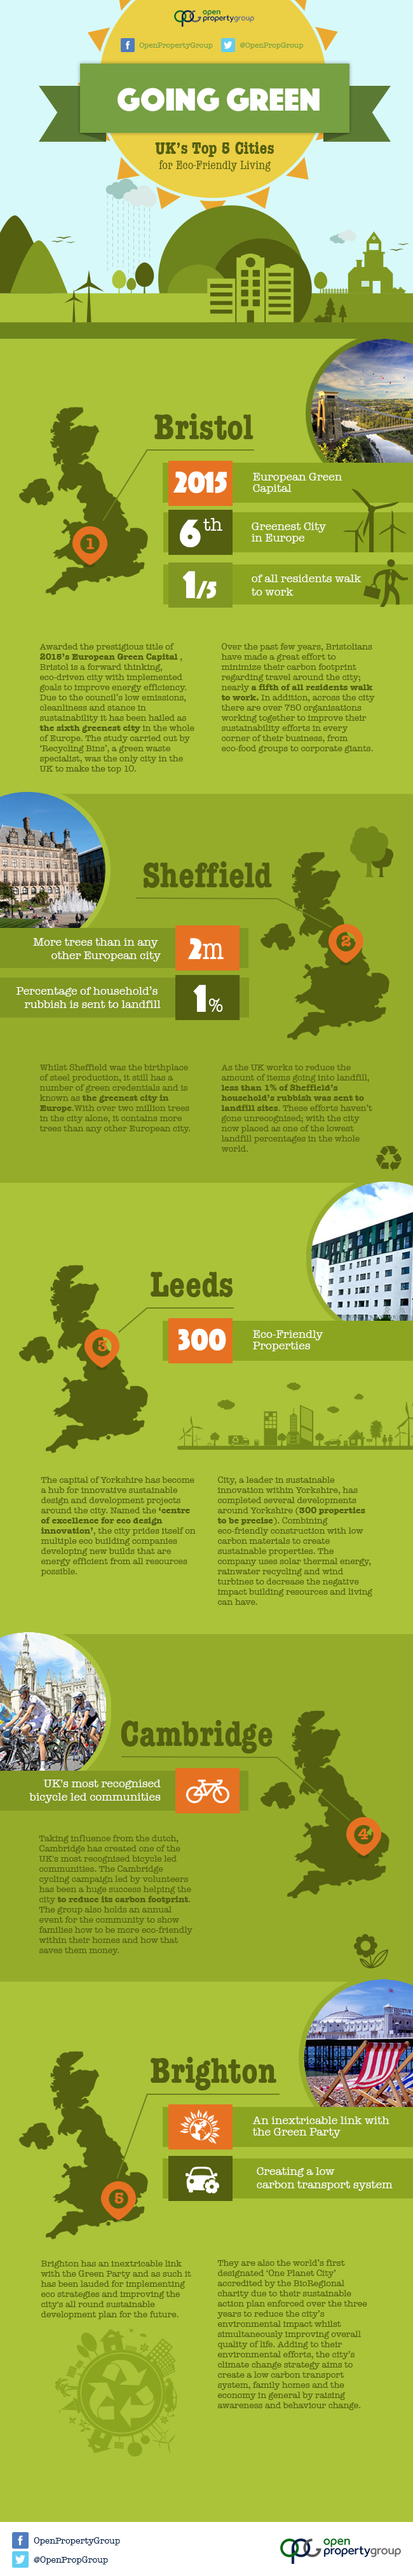 Going Green — UK's Top Five Cities for Eco-Friendly Living